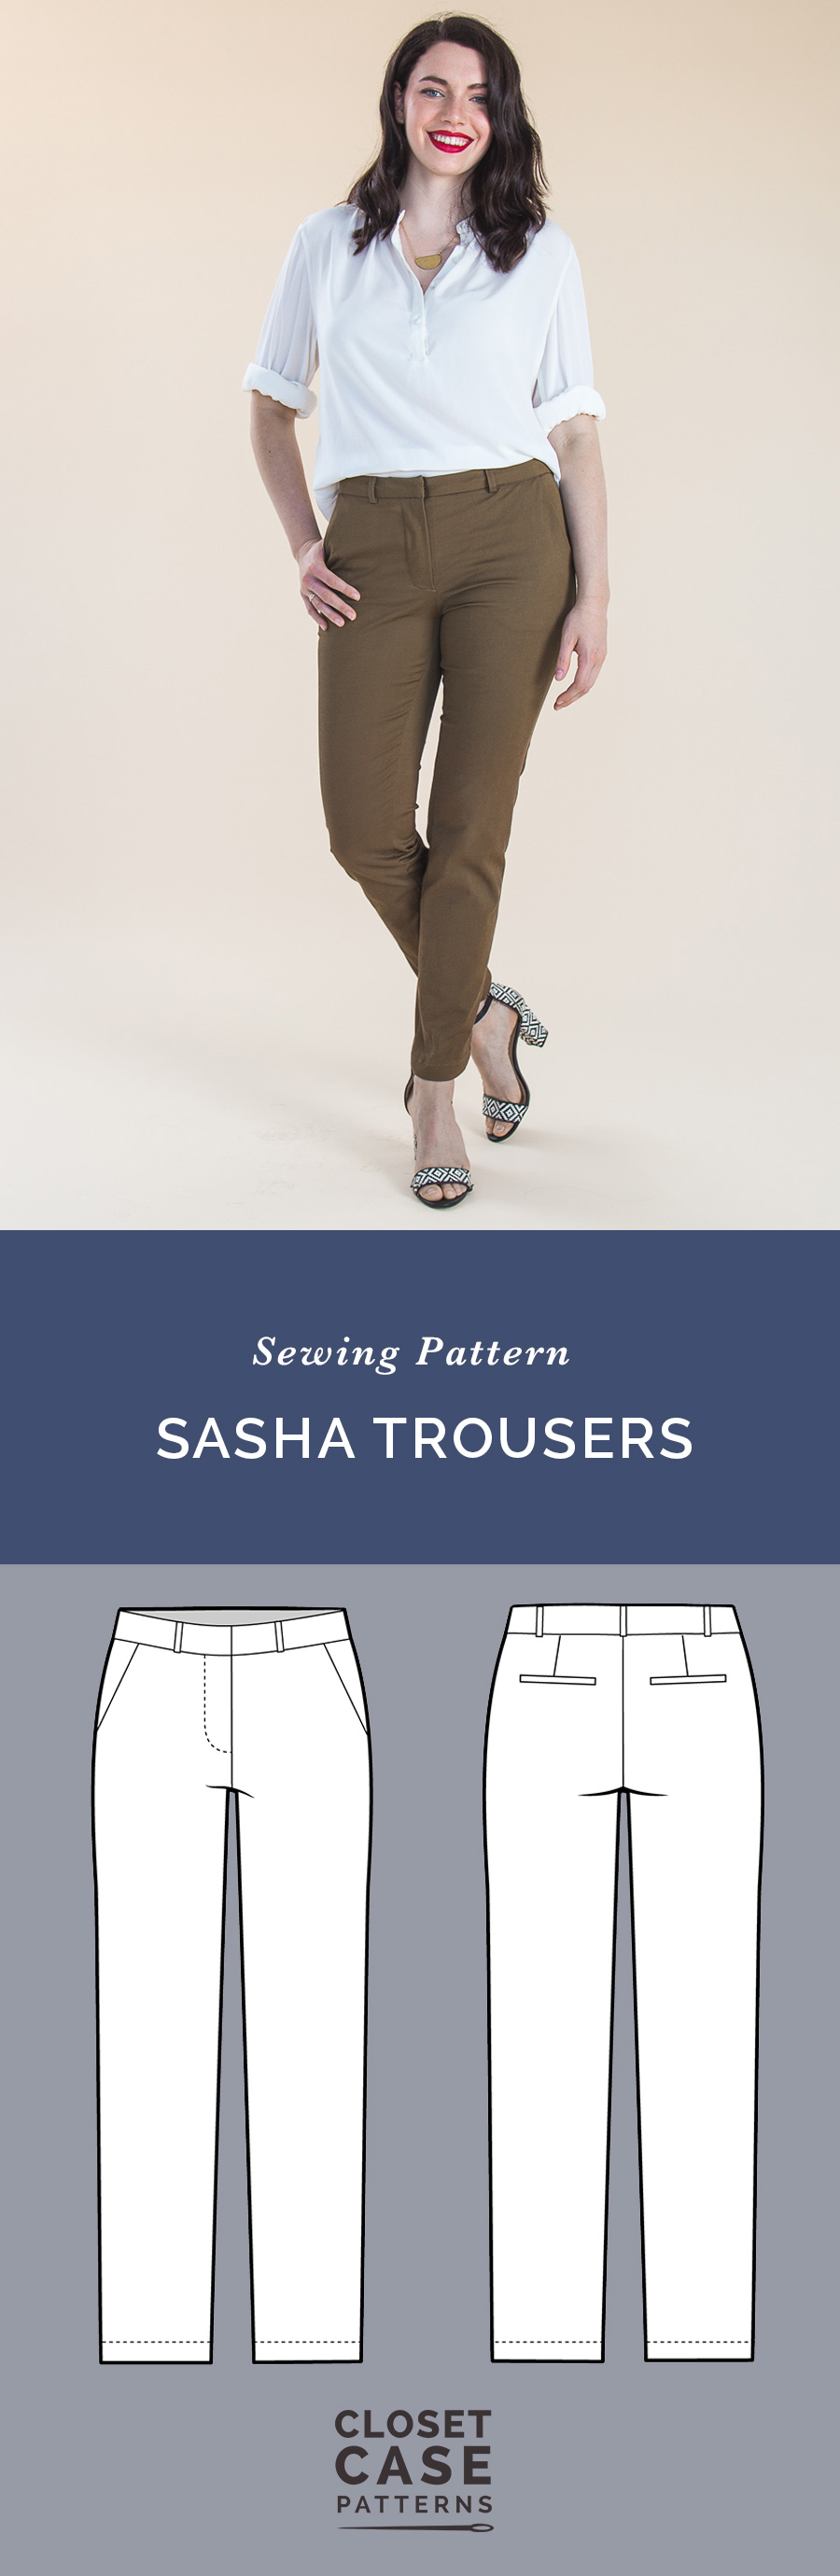 Sasha Trousers Pattern // Our ultimate pants pattern! // Closet Case Patterns